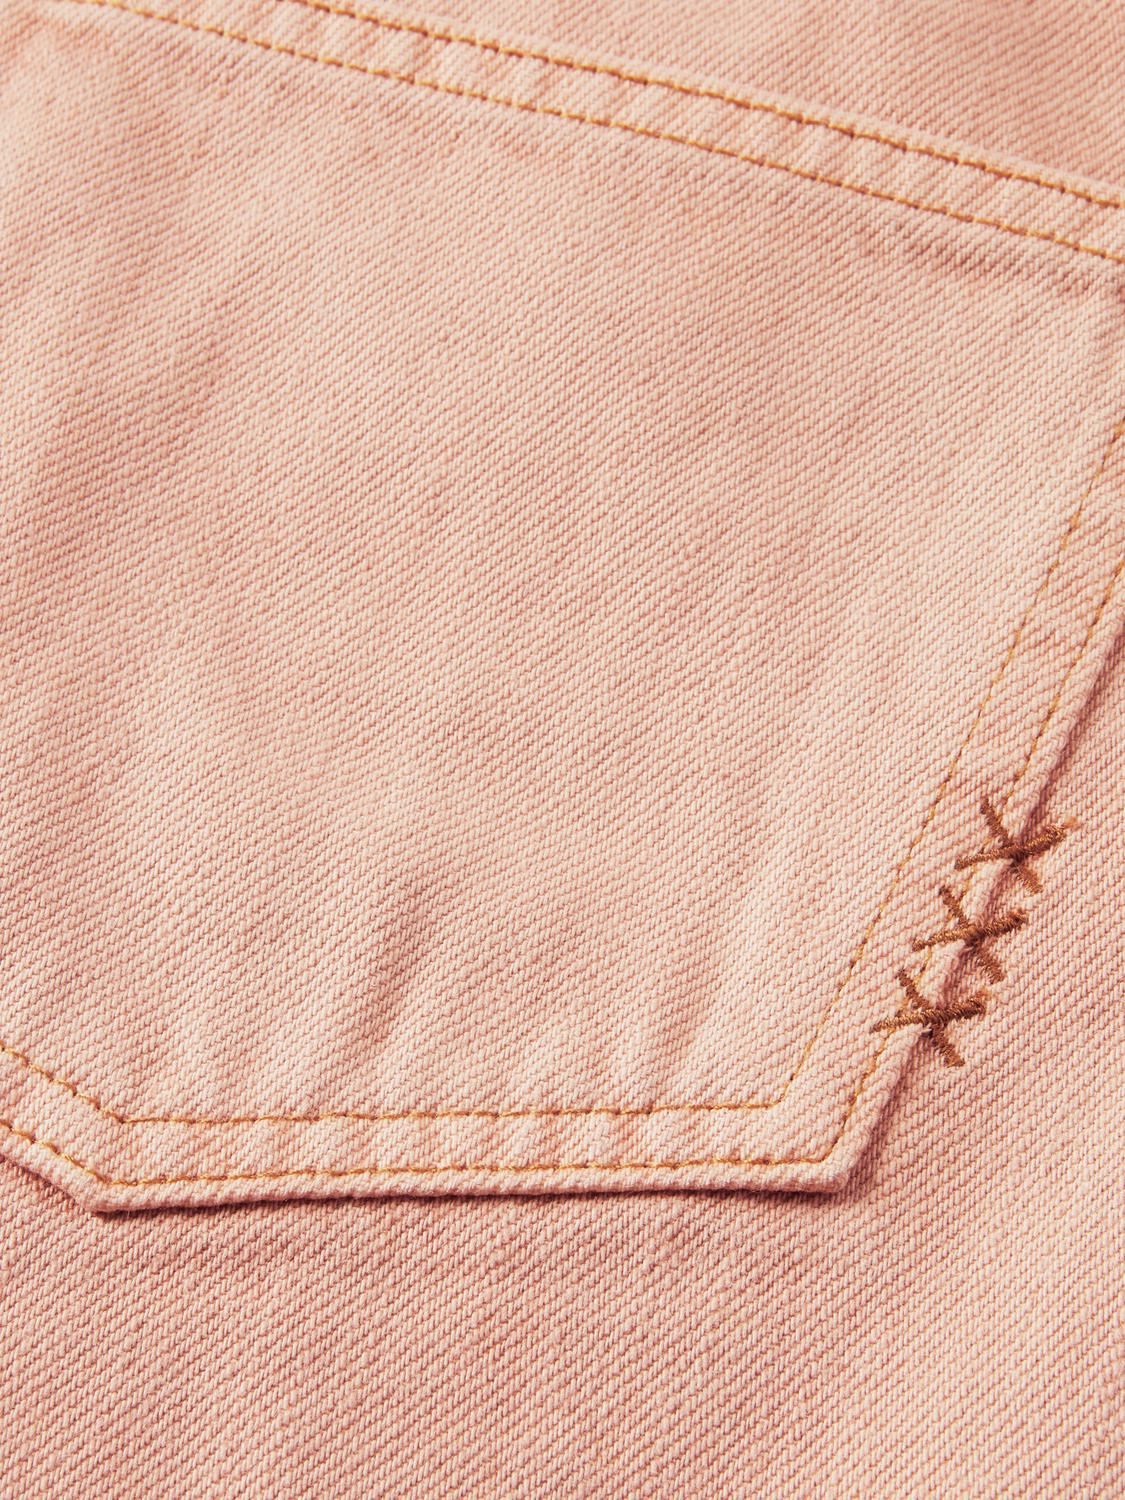 Tailored cotton jeans — Pastel Dyes 7